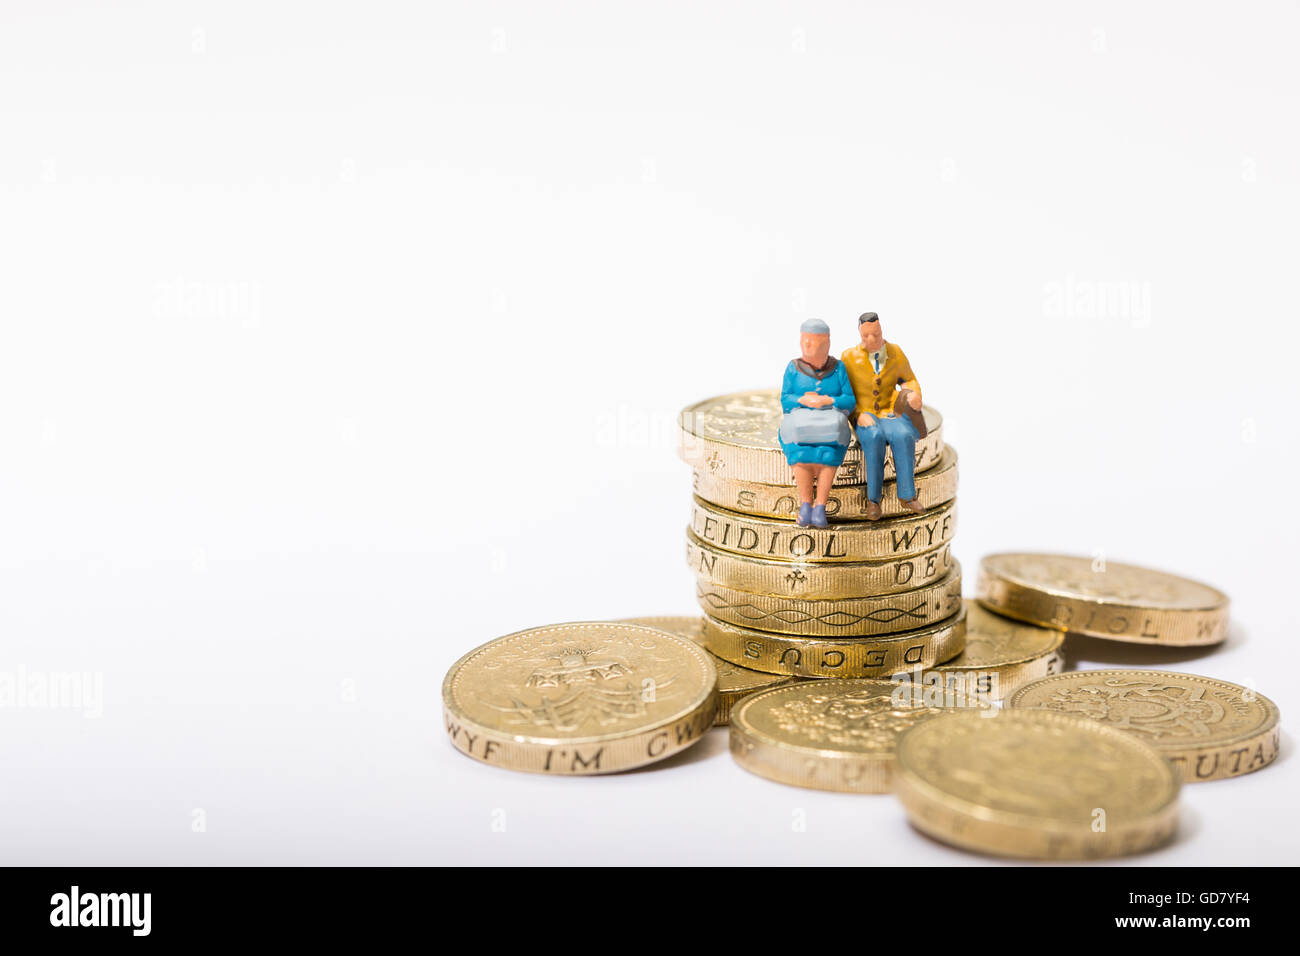 Concept image of two pensioners sat on a pile of pound coins - Stock Image